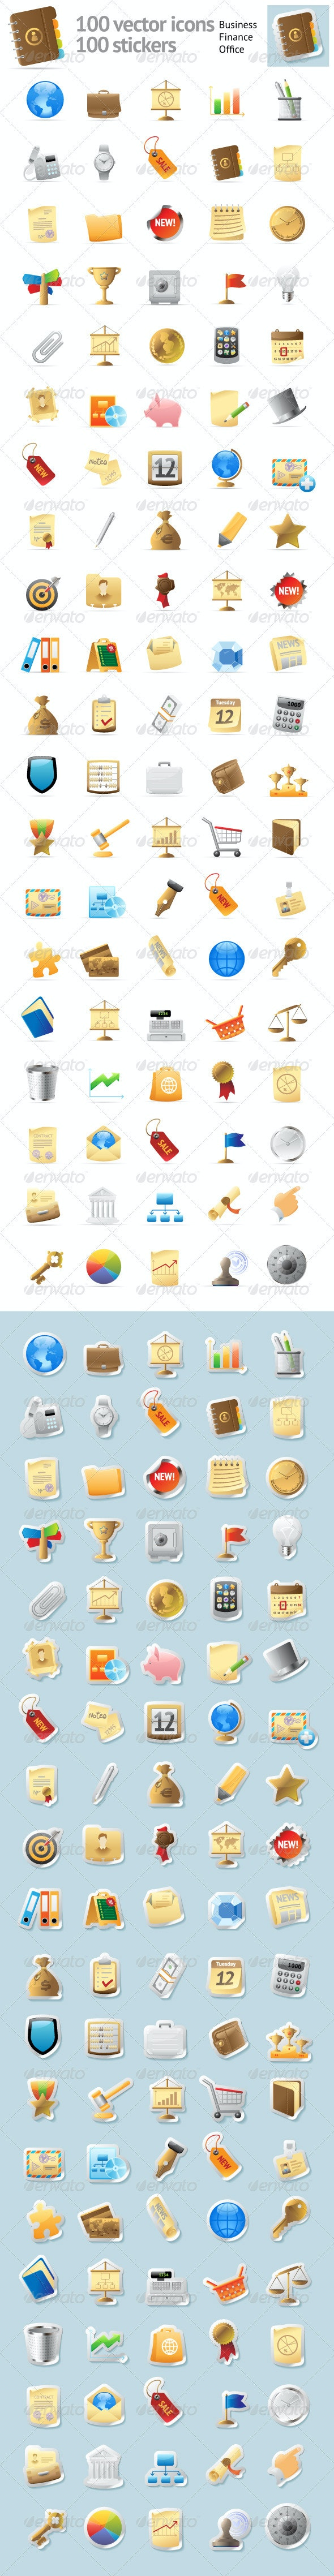 100 Icons For Business